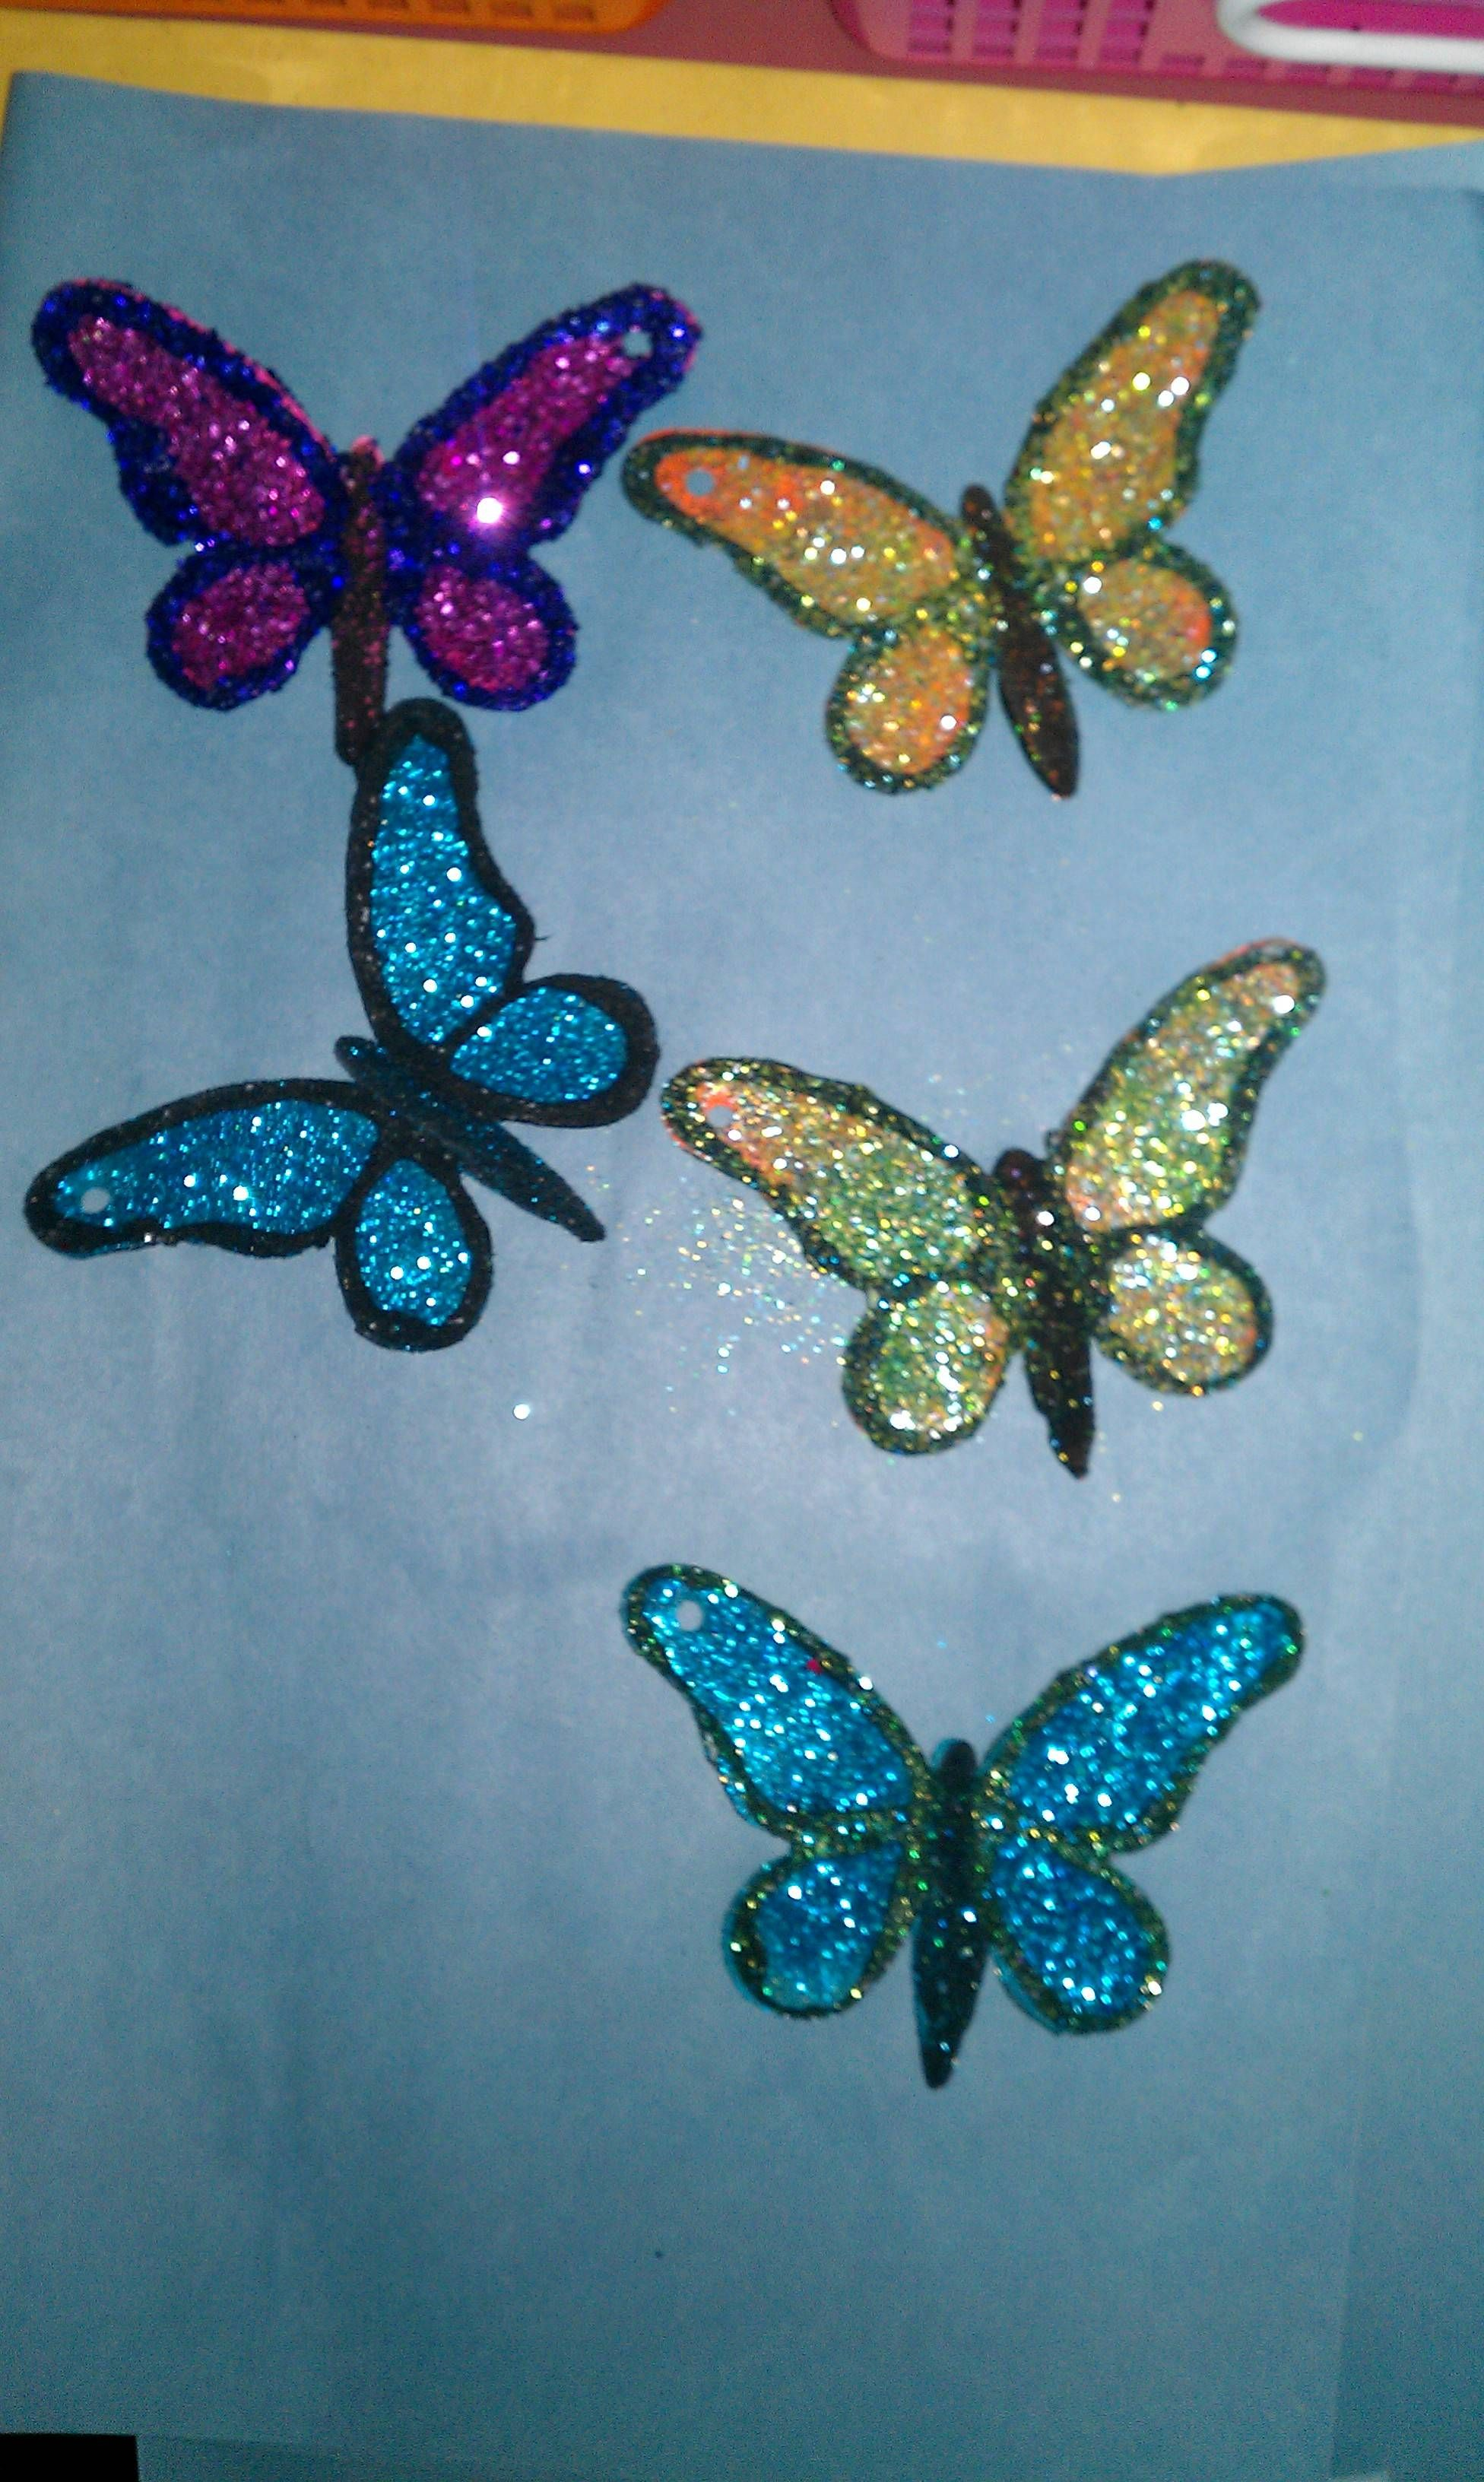 Pin by Carol Galagan on Teaching School Crafts & Projects | Glitter art,  Crafts, School crafts